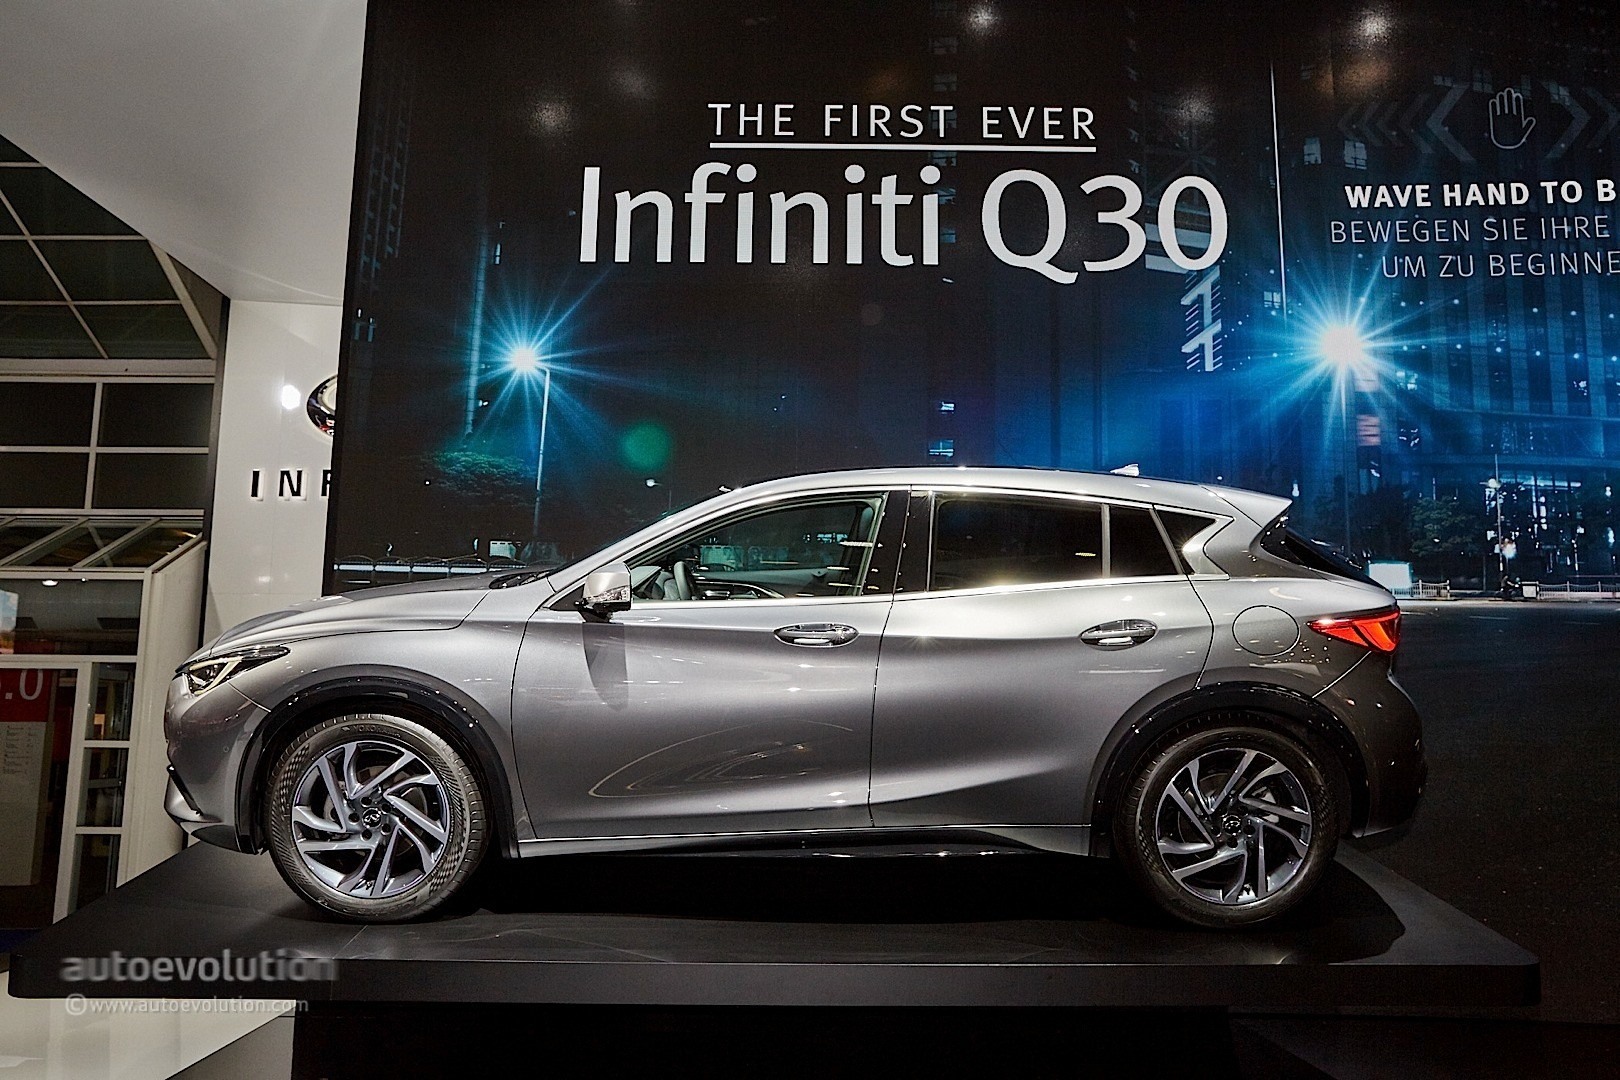 Car Jack 2017 Infiniti Q30 Feels Organic, Rides High In Frankfurt